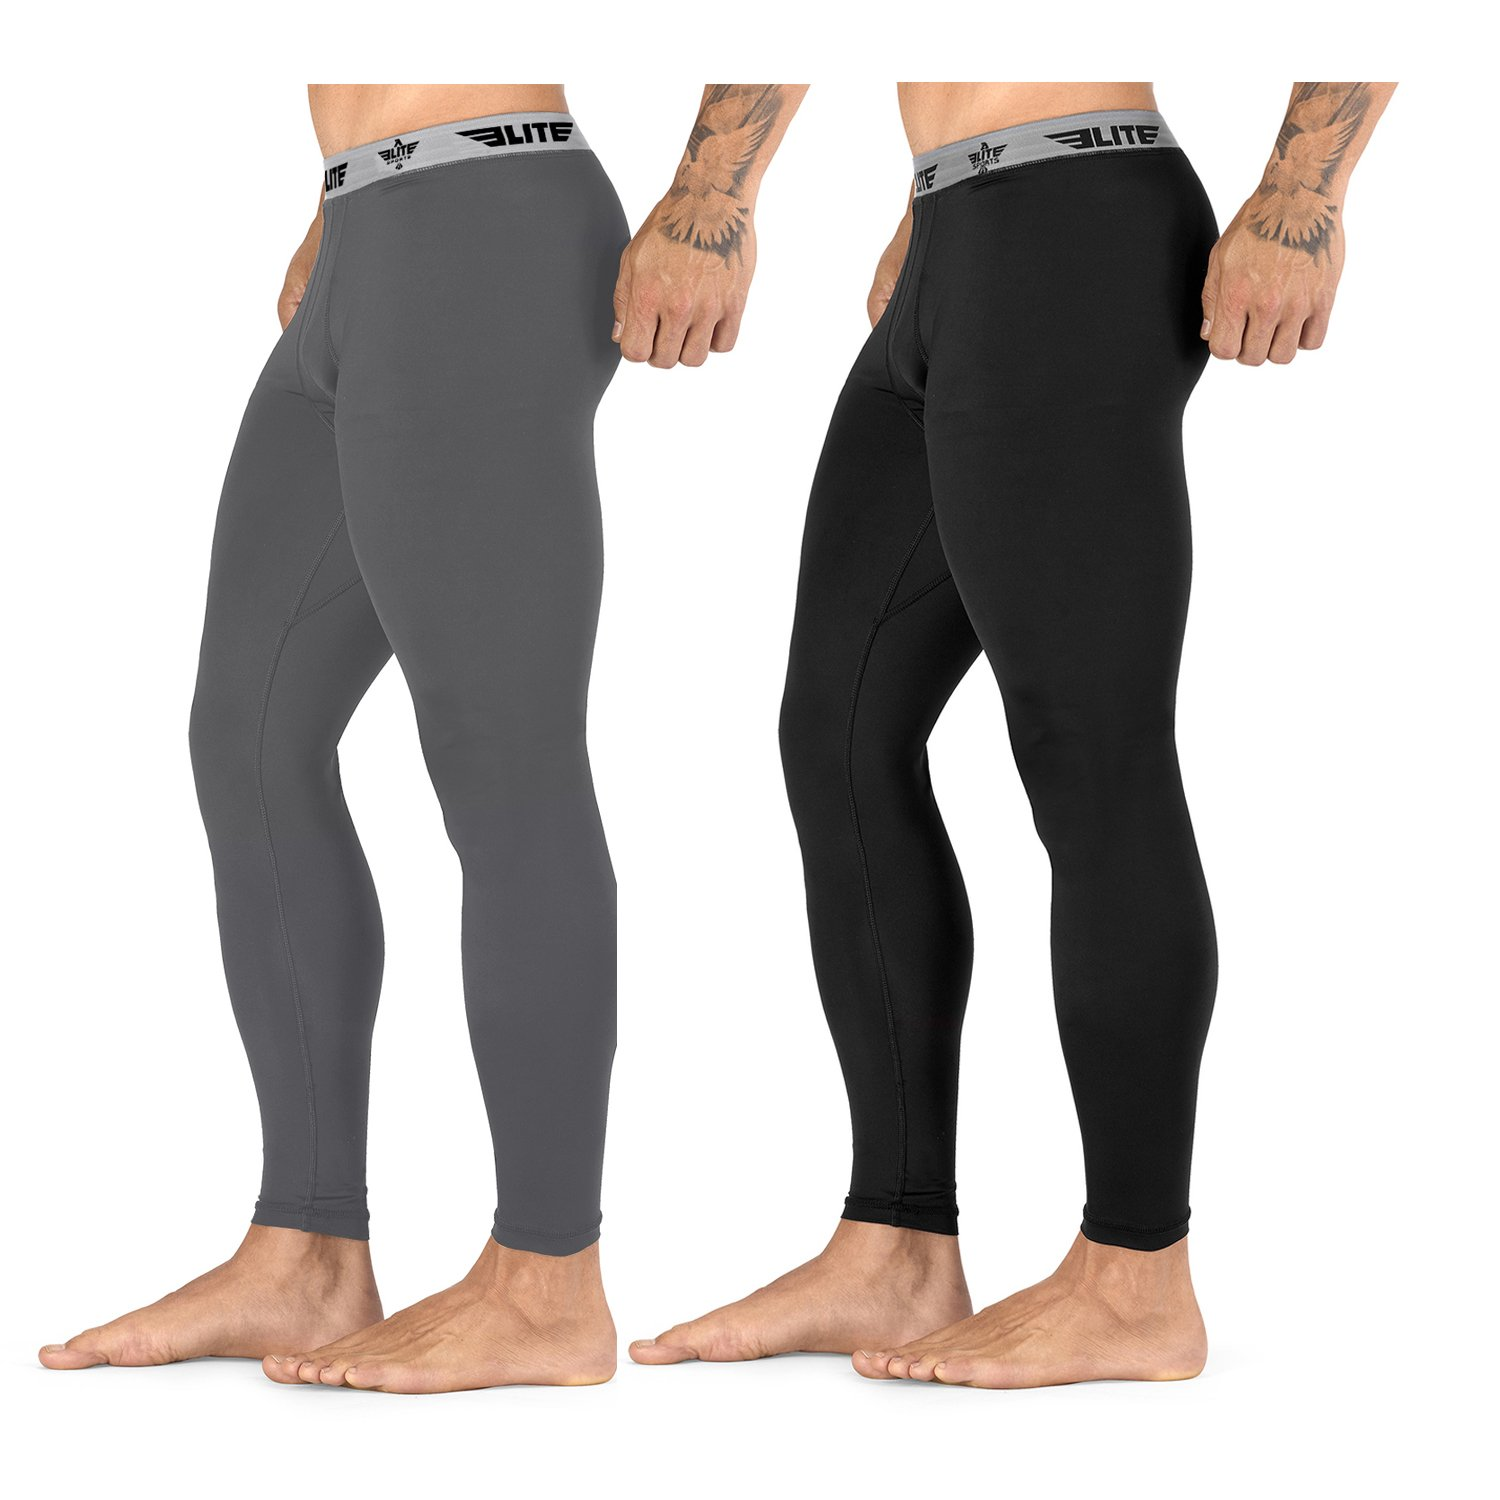 76436b6b64 Elite Sports Workout Standard MMA BJJ Spats Base Layer Compression Pants  Tights product image